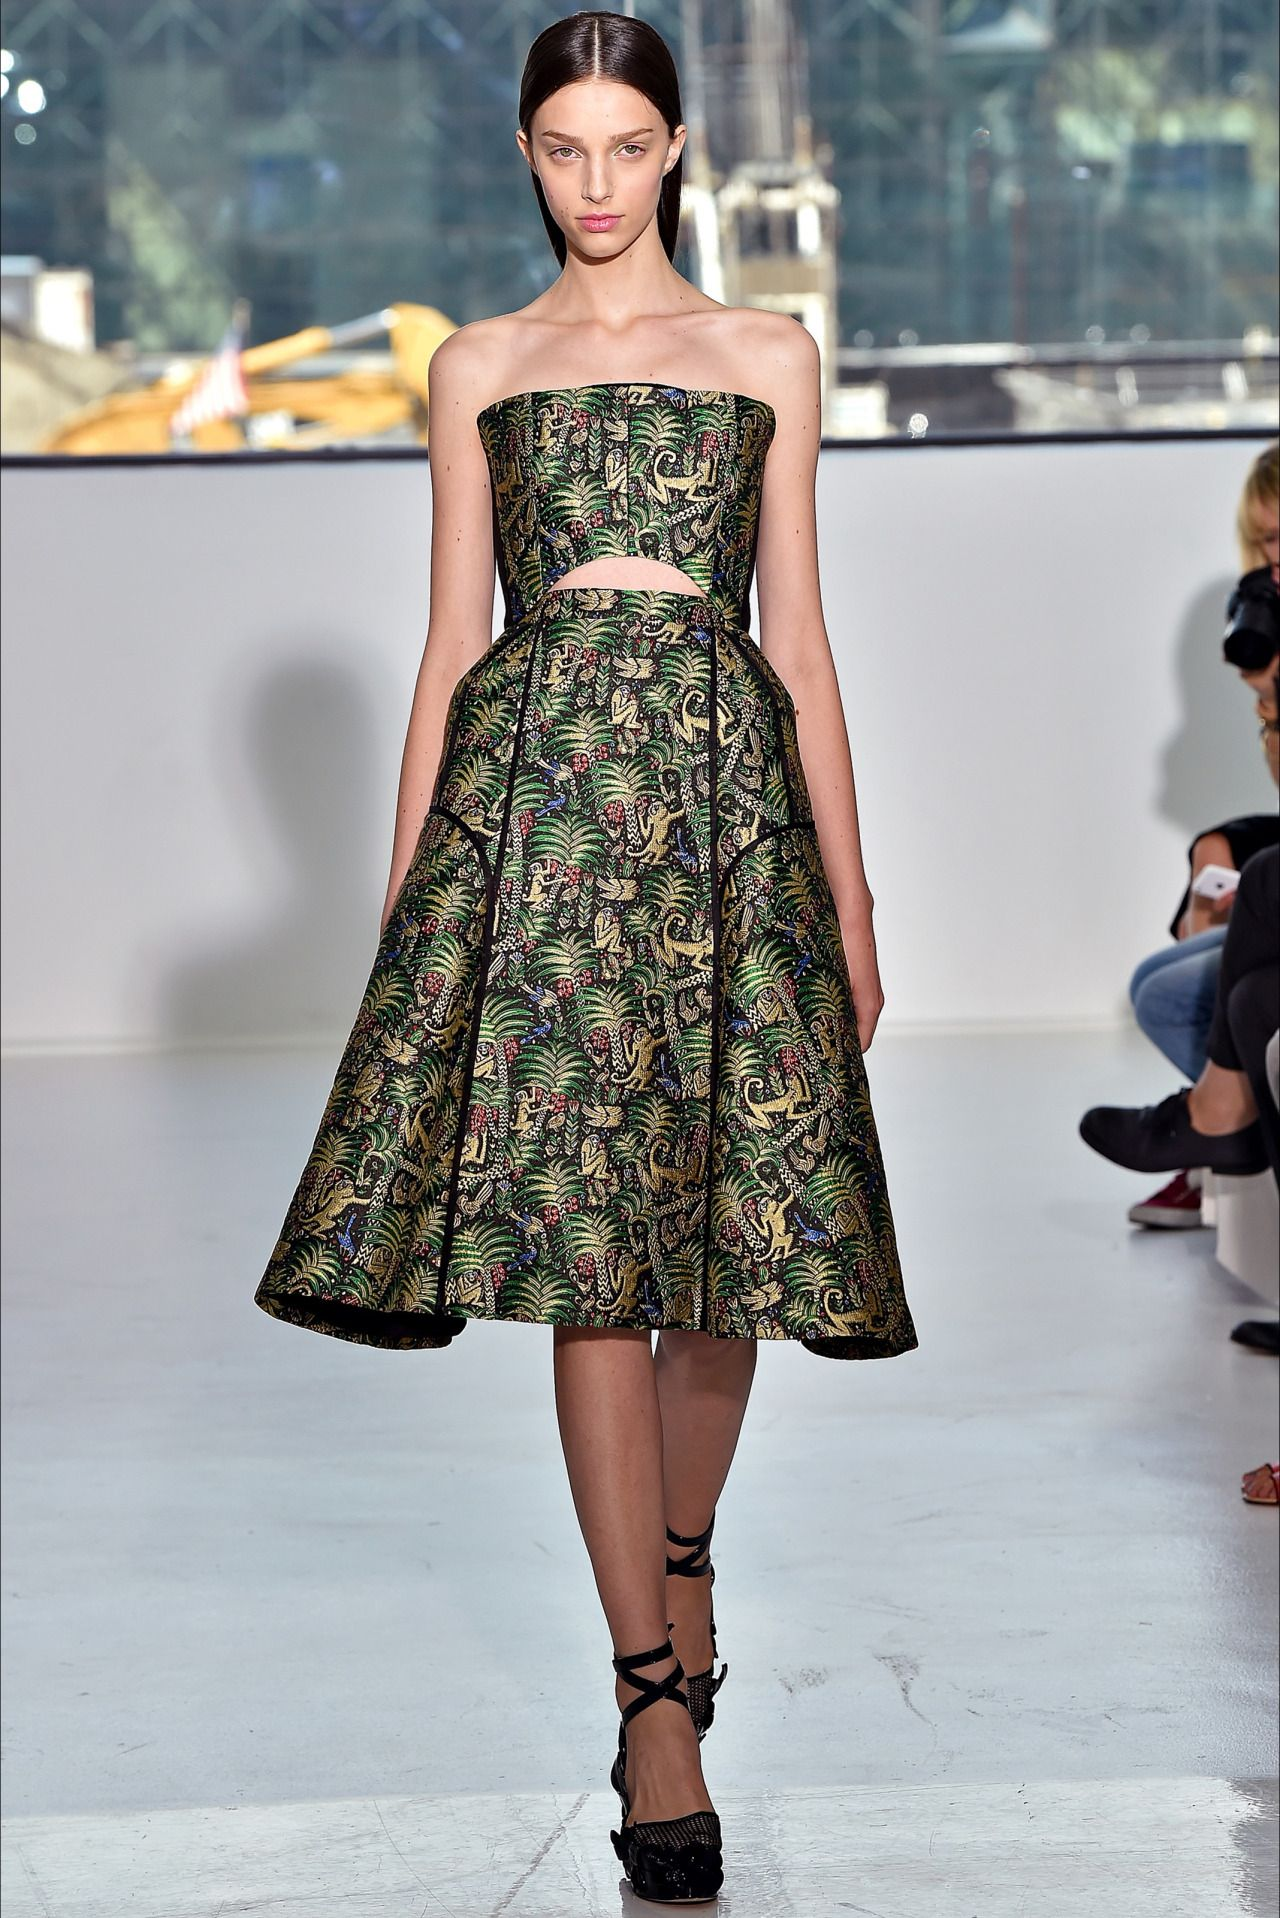 Larissa Marchiori @ Delpozo S/S 2015, New York | model mofos